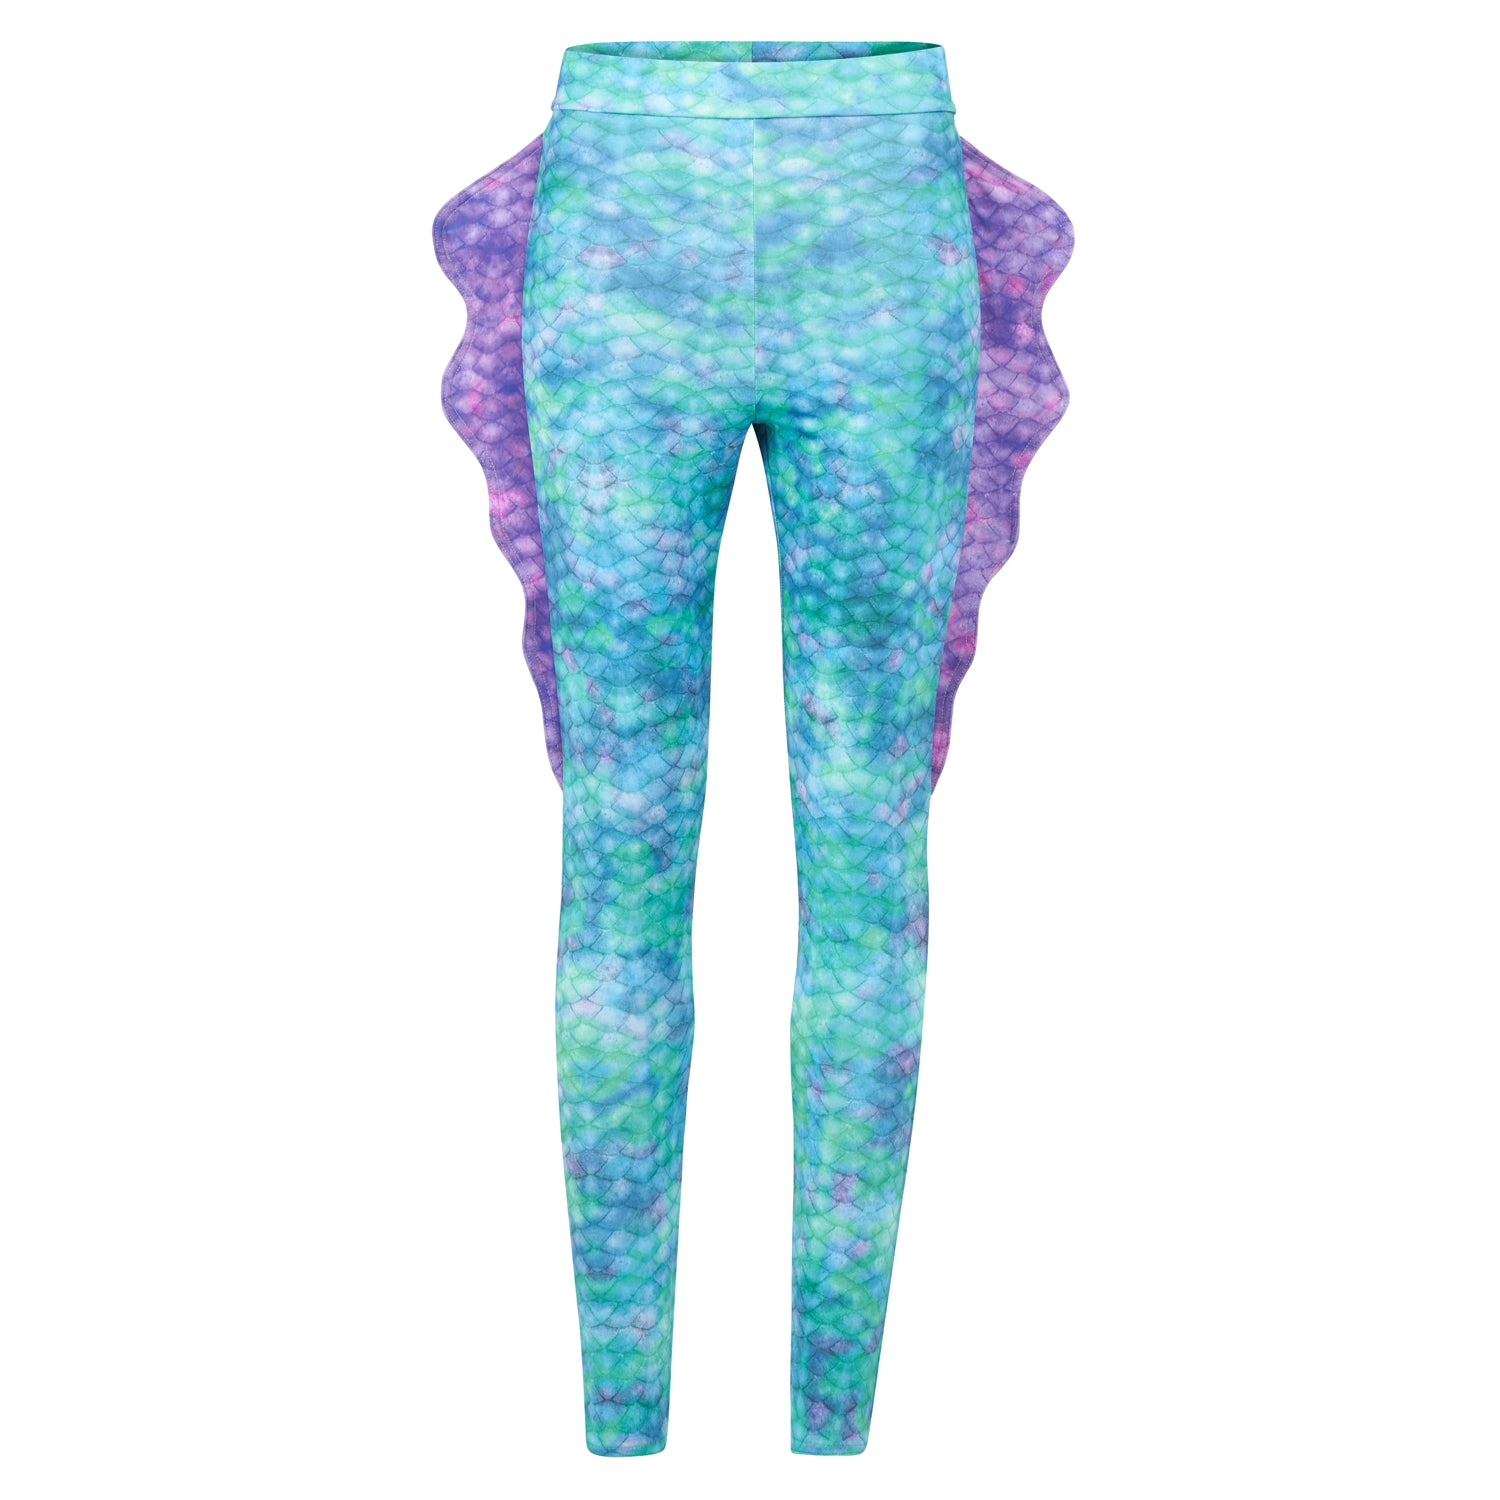 Gefrorene Aqua Mermaid Leggings